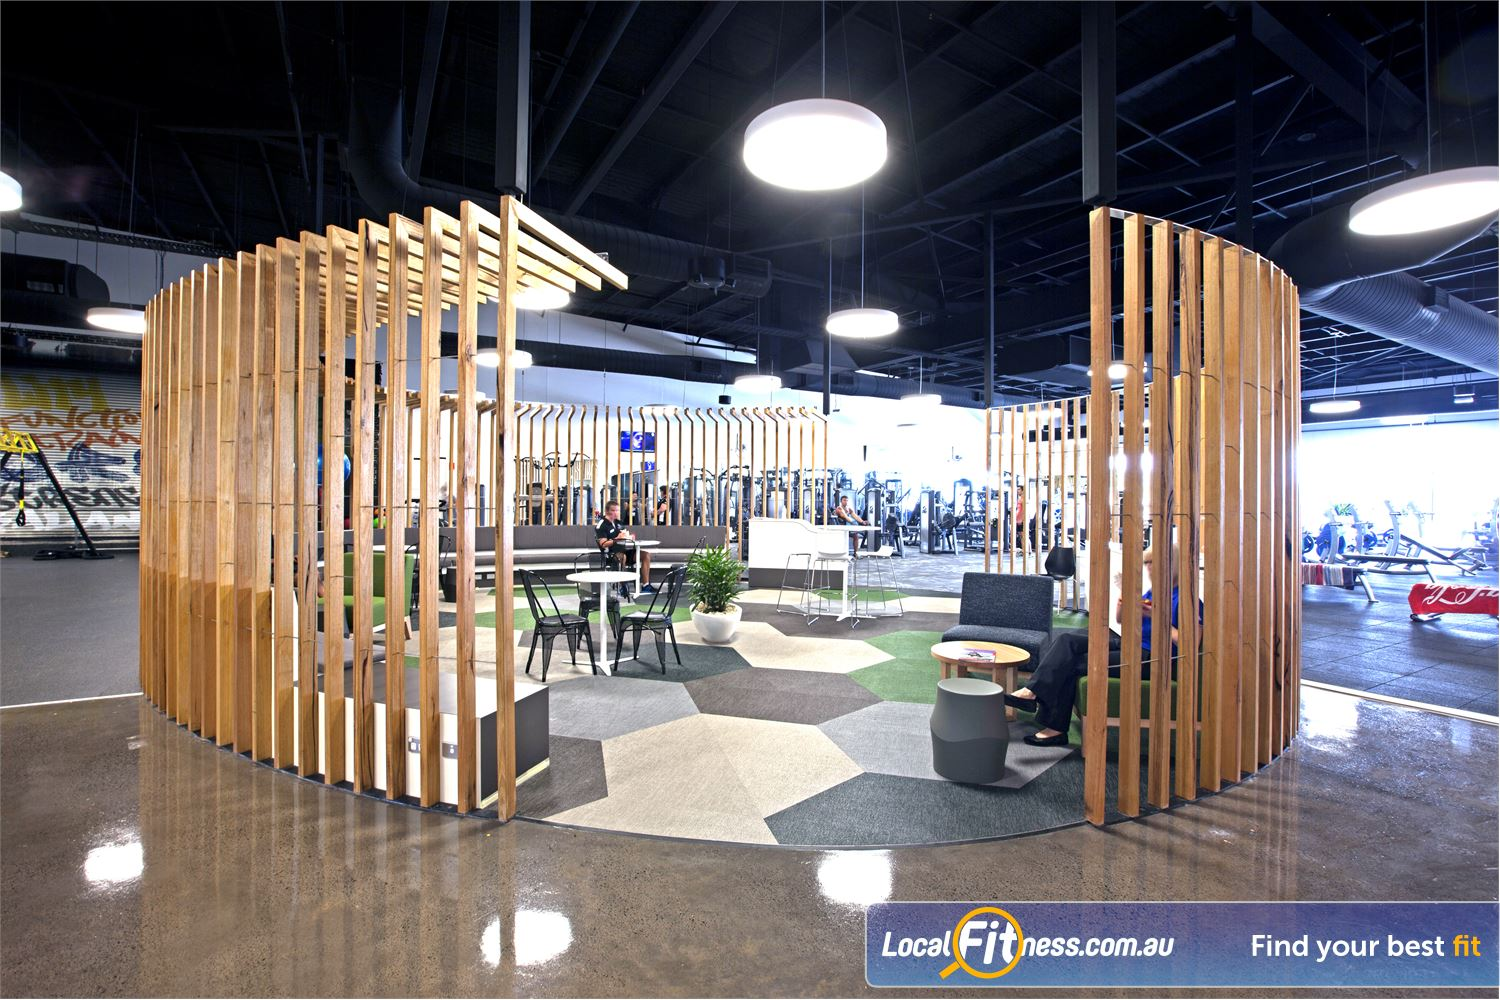 Goodlife Health Clubs Near Mudjimba Comfortable lounges and a chill out area for members and guests.